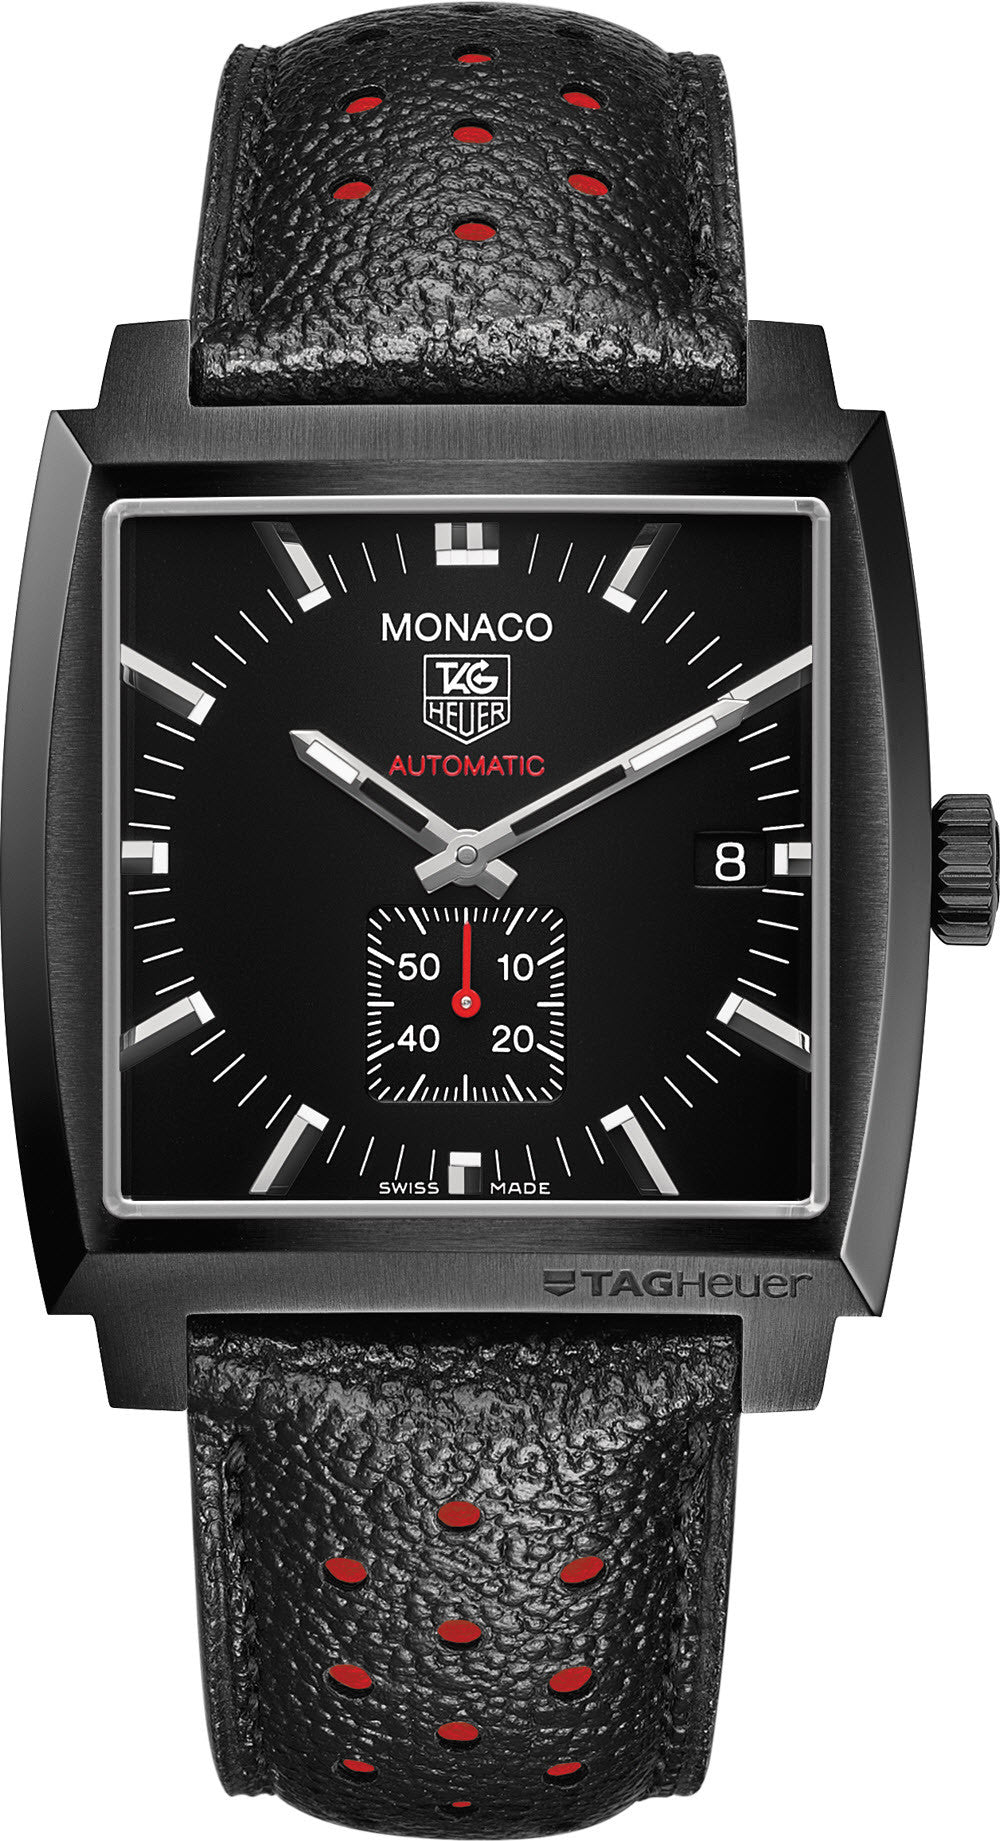 TAG Heuer Watch Monaco Limited Edition